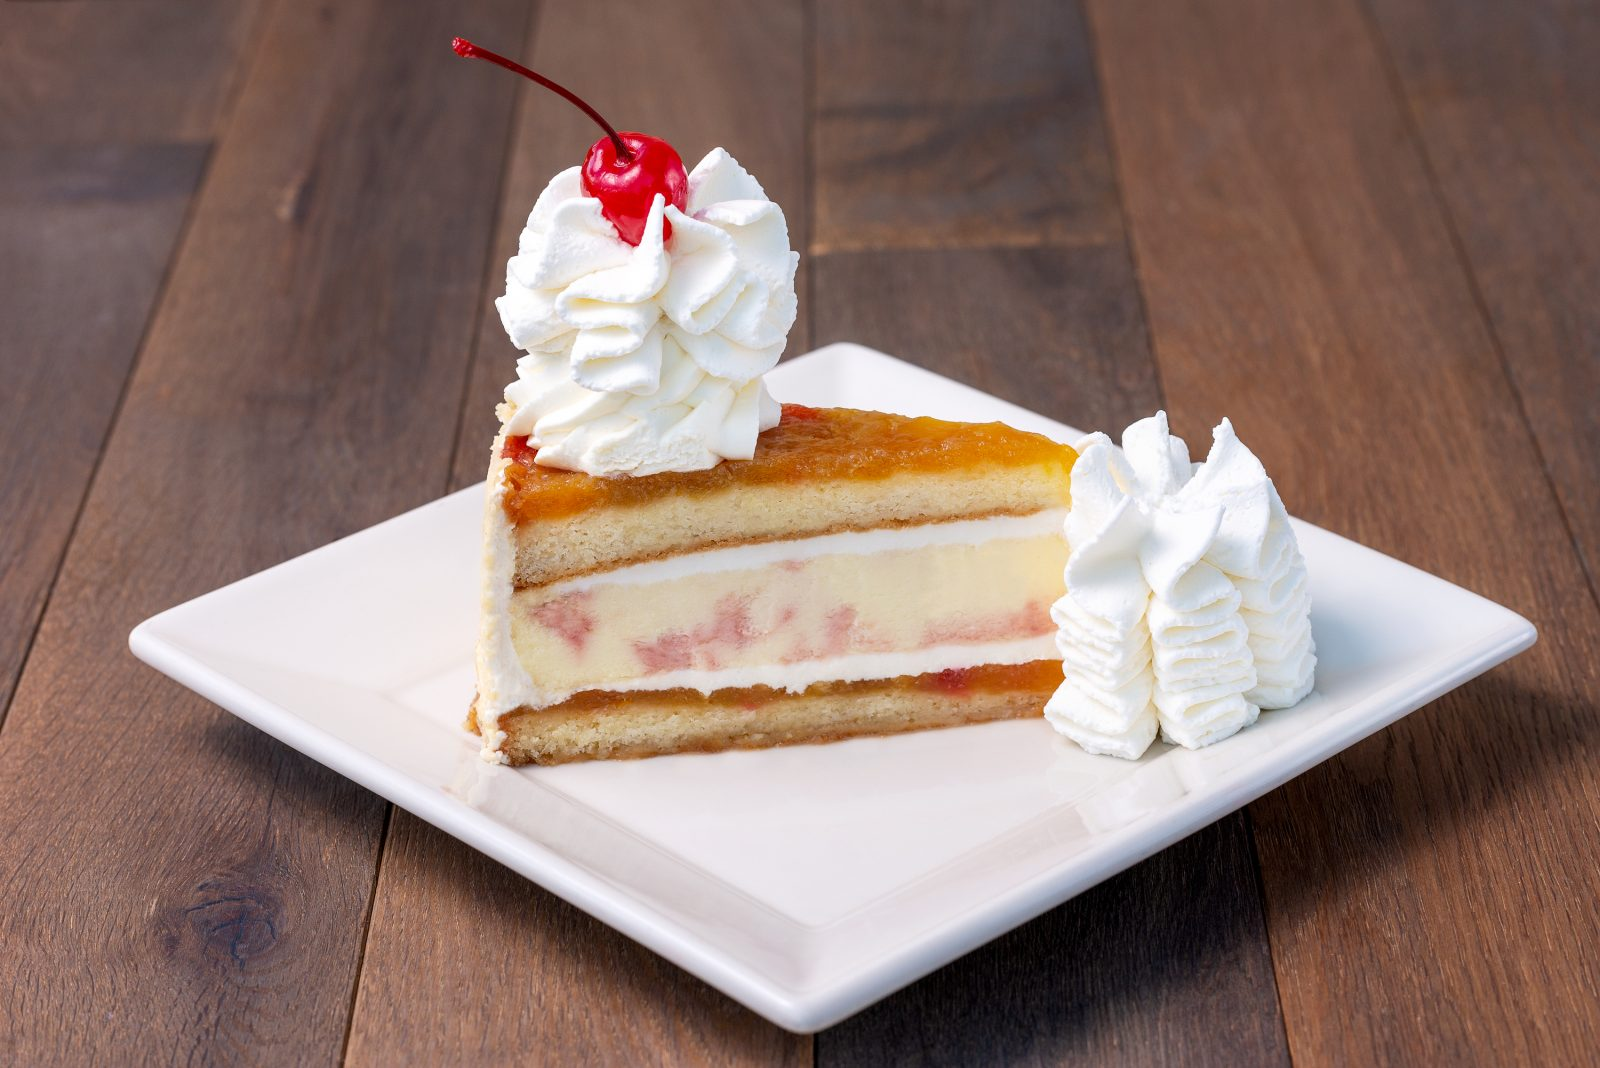 Enjoy Pineapple Upside-Down Cheesecake at Cheesecake Factory and support Freestore Foodbank!